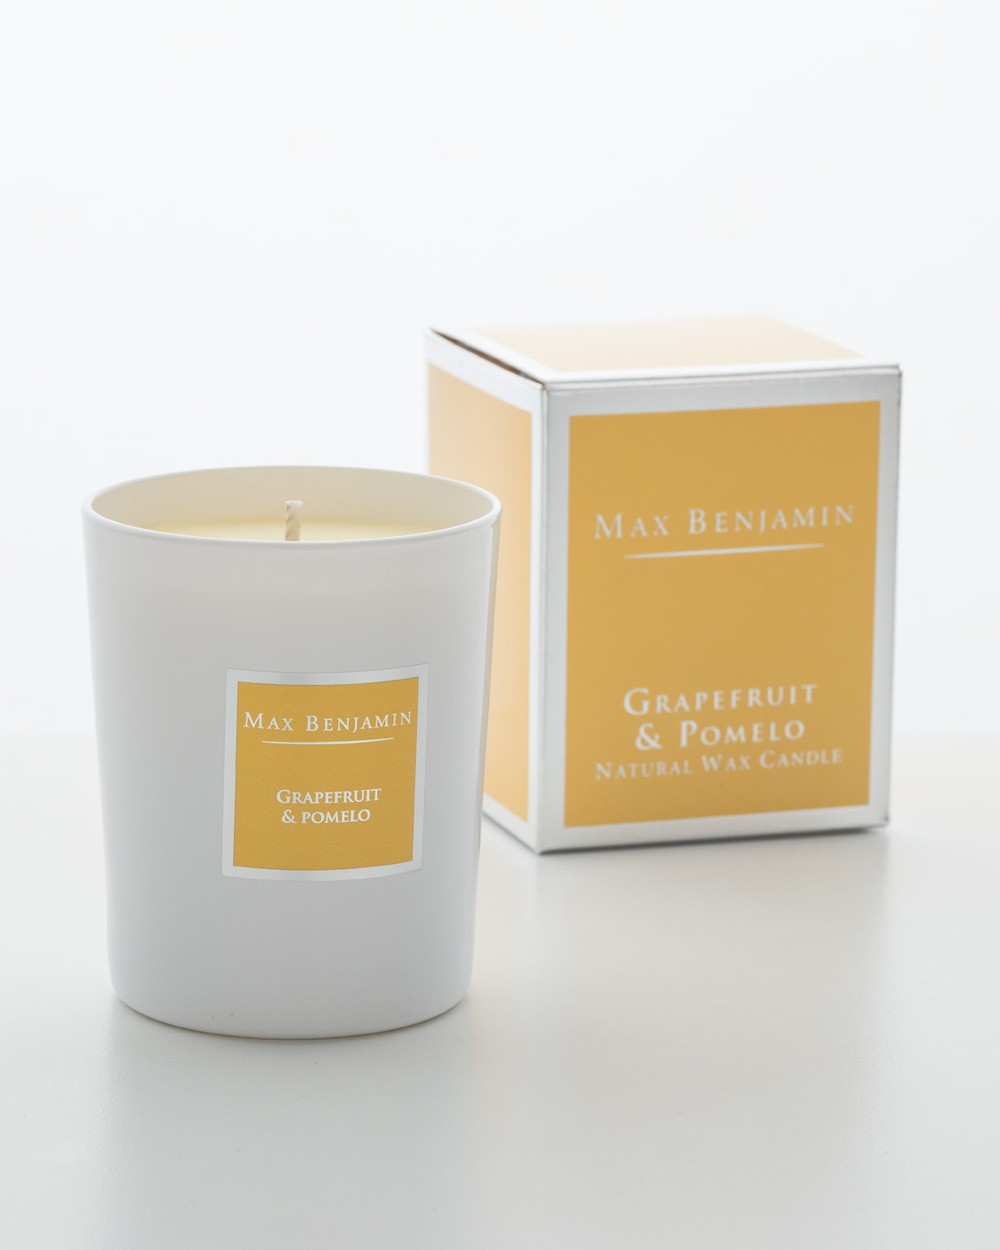 Grapefruit And Pomelo Scented Candle By Max Benjamin ...